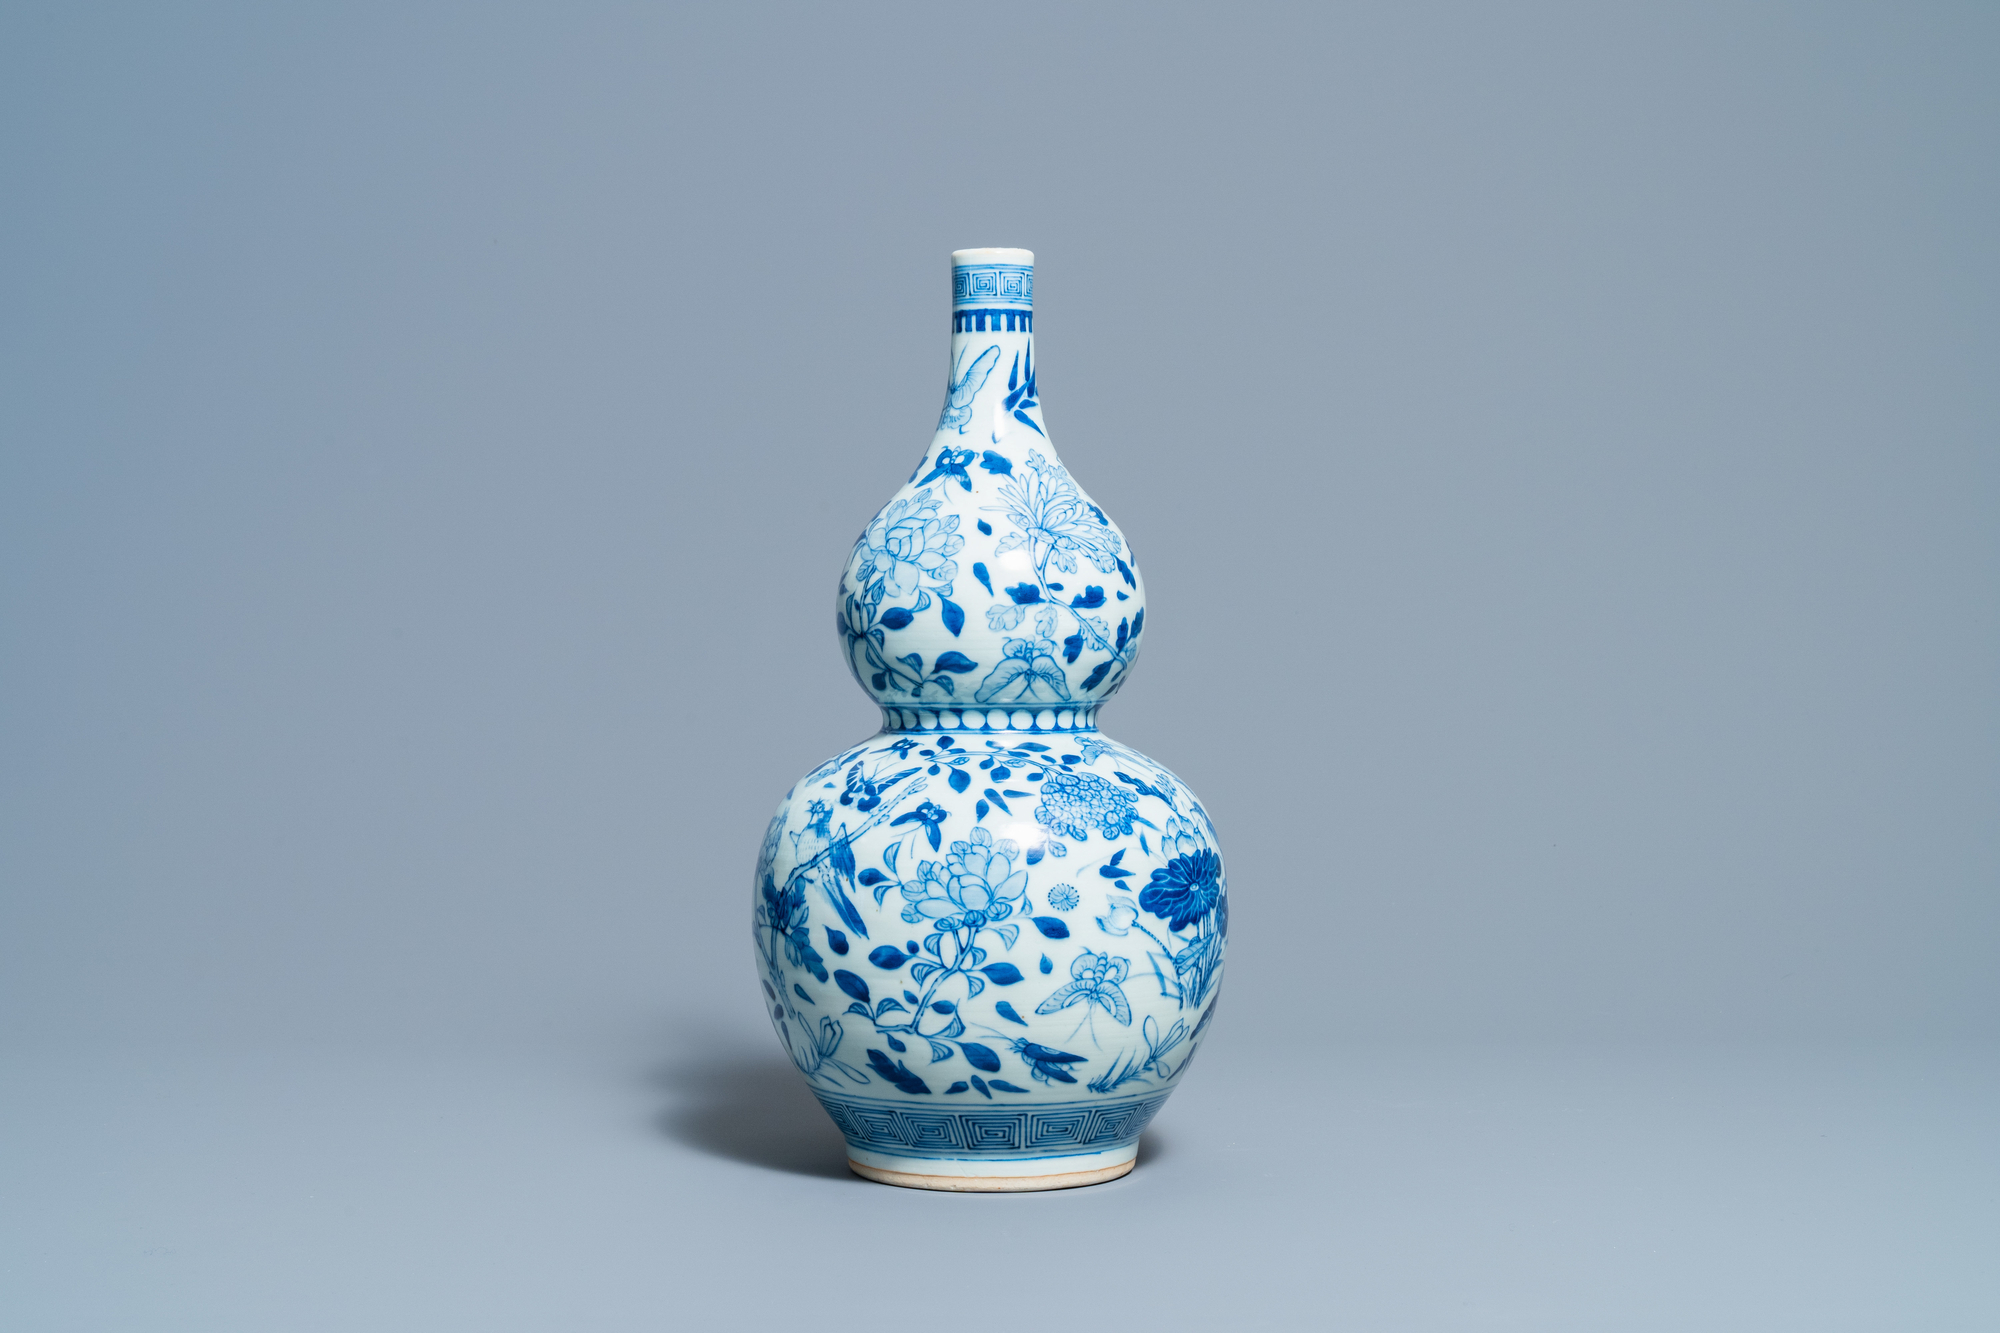 A Chinese blue and white double gourd vase, 19th C. - Image 4 of 6